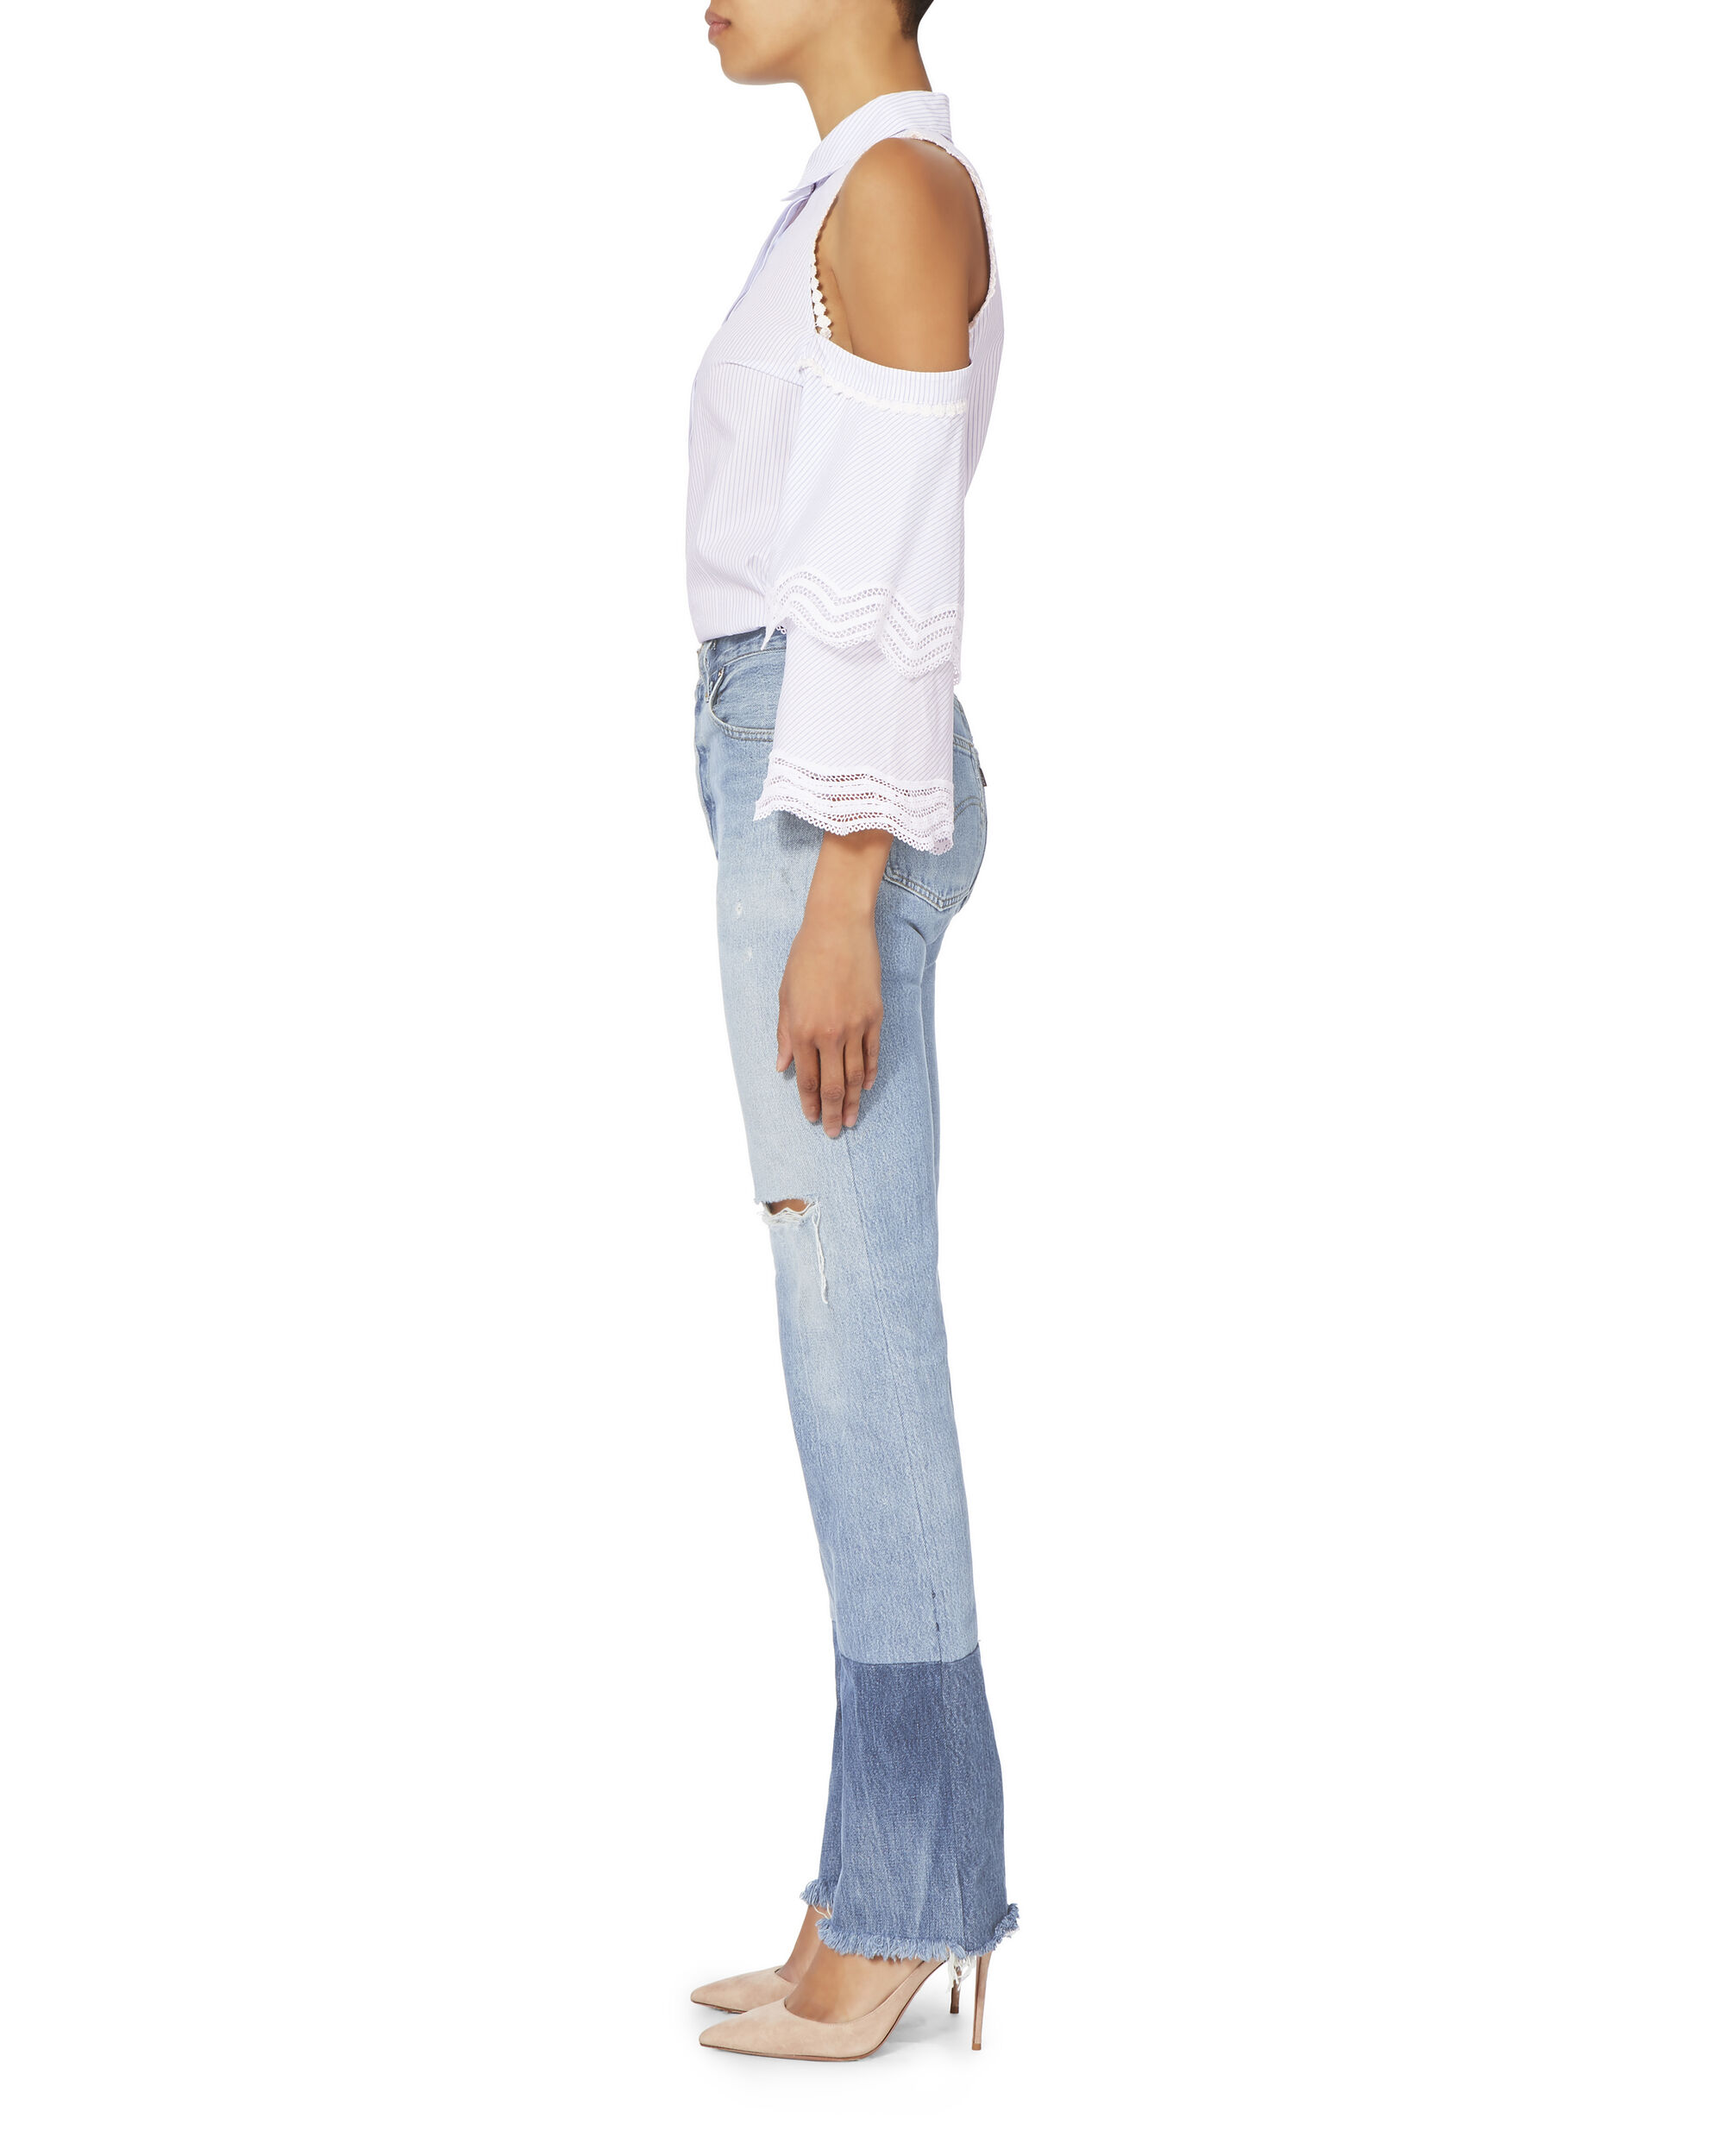 High-Rise Stove Pipe Two-Tone Jeans, DENIM, hi-res